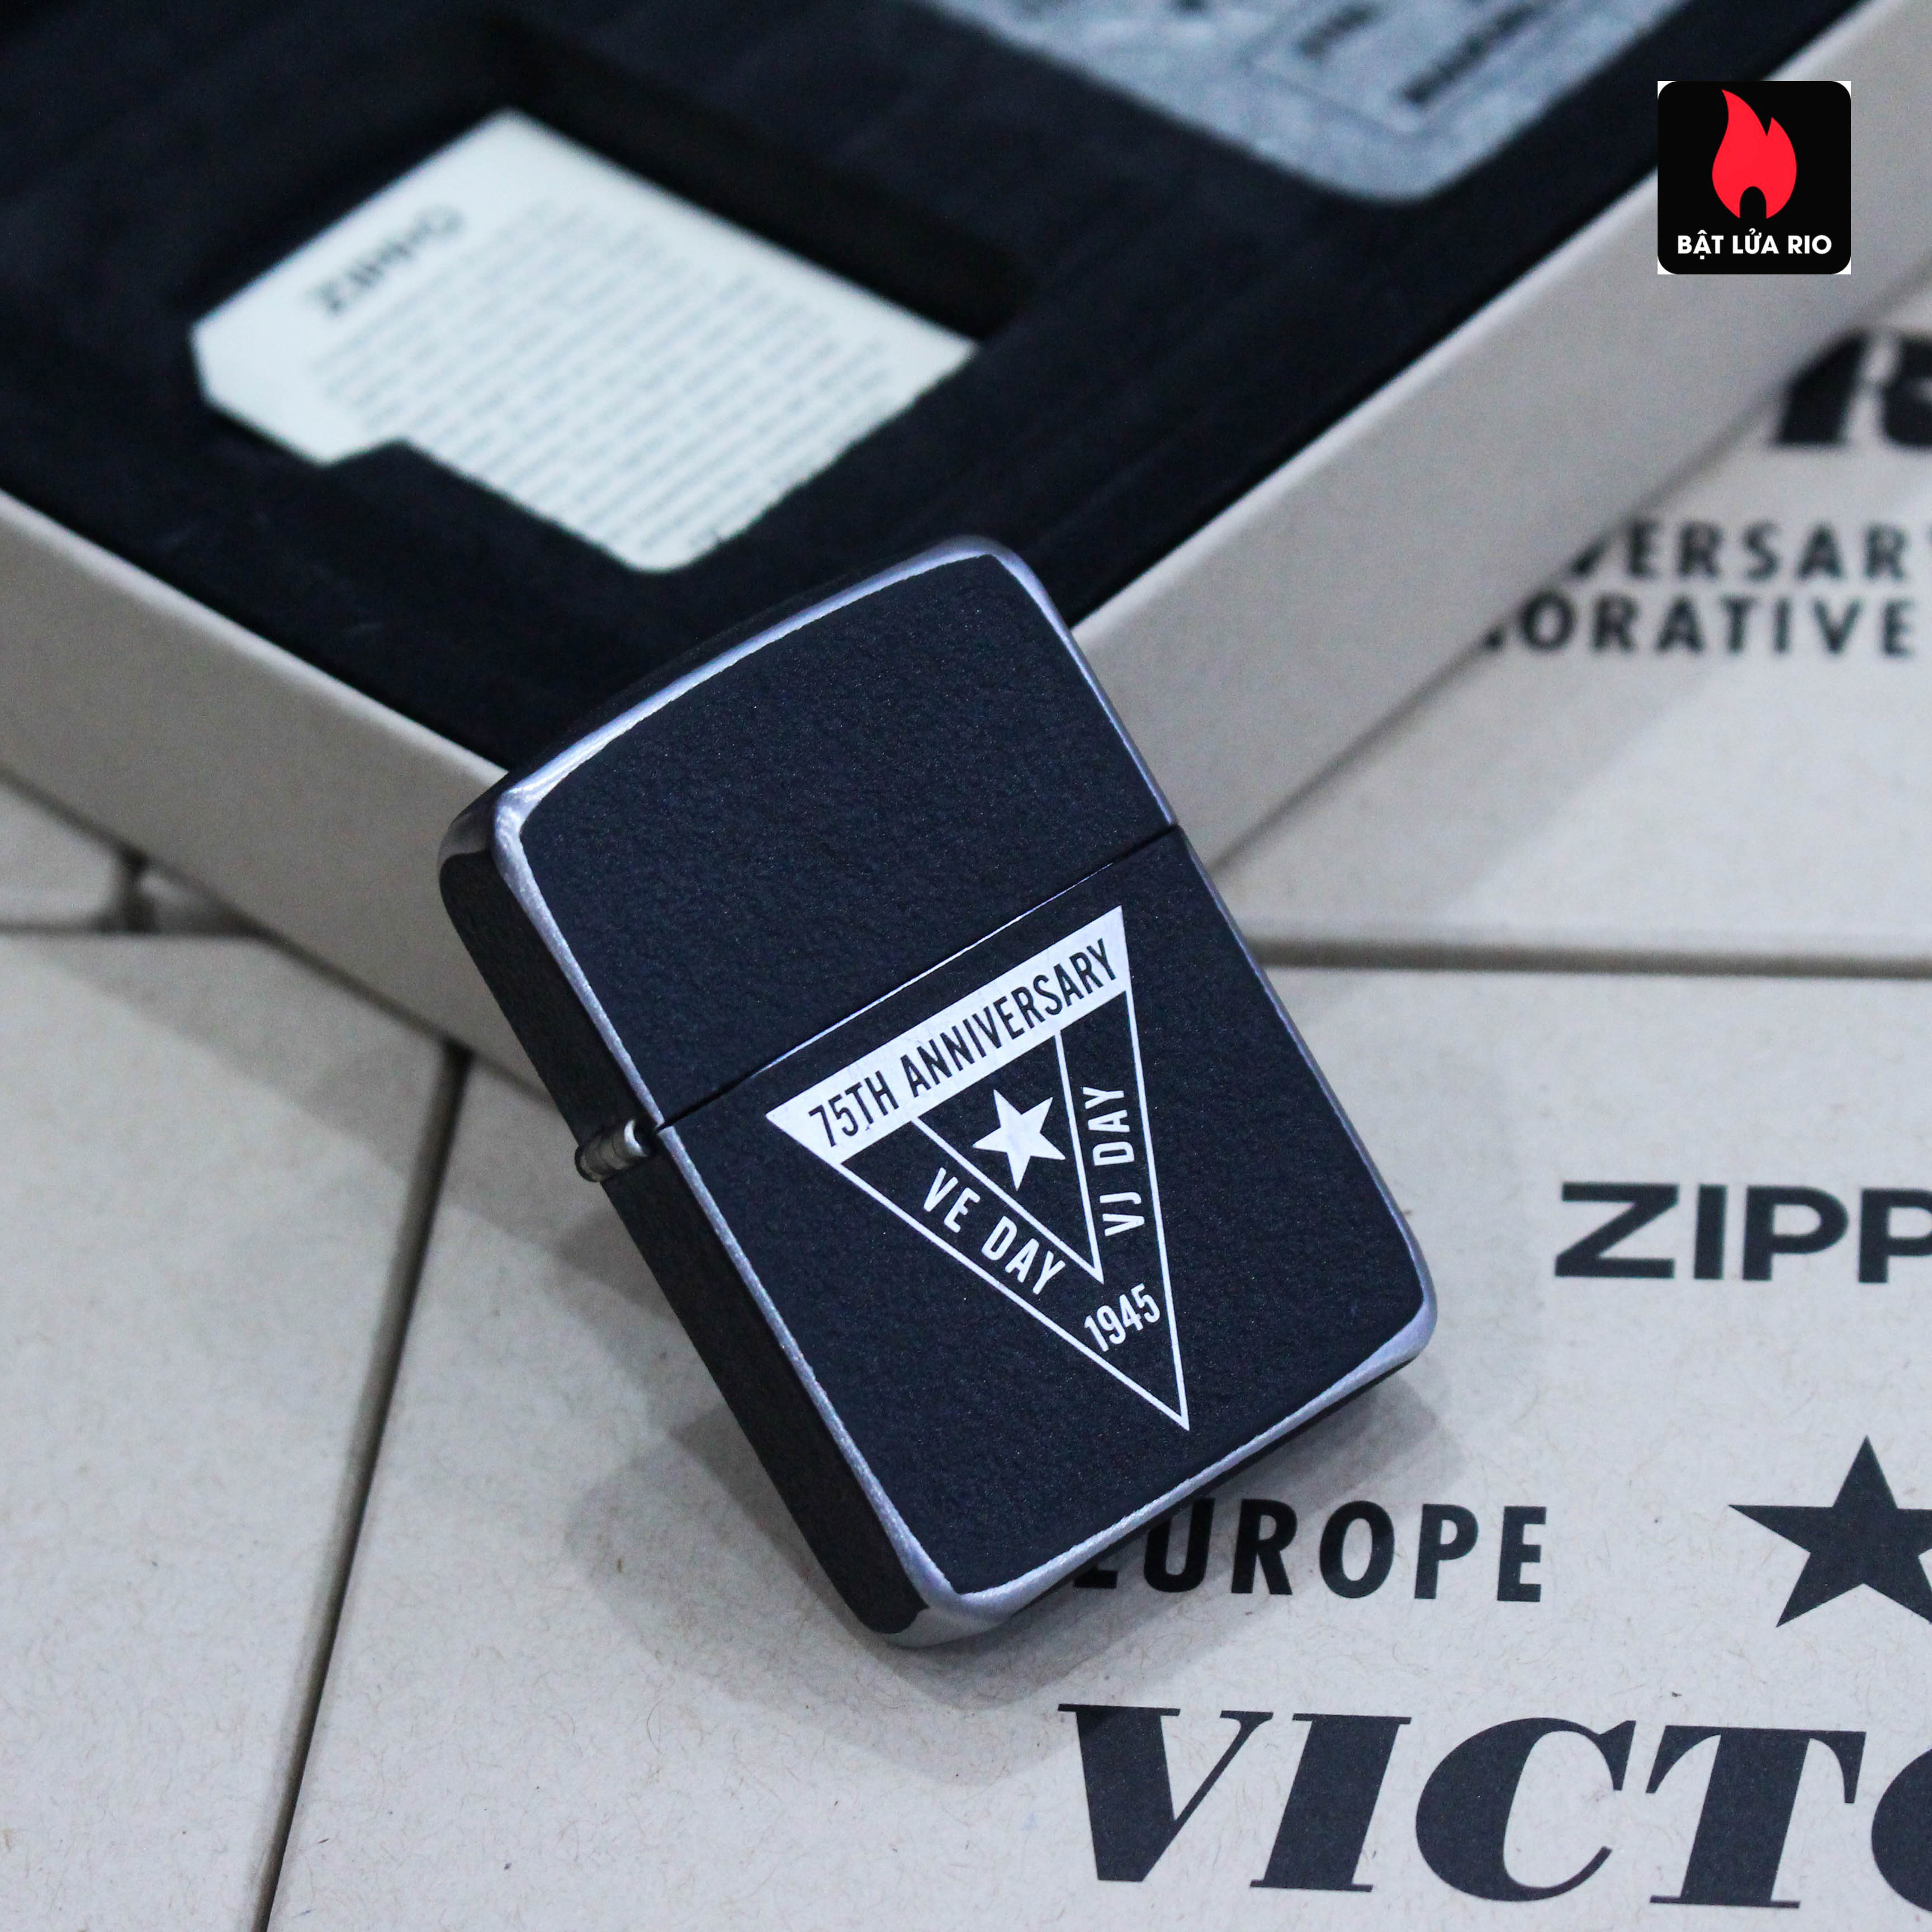 Zippo VE/VJ 75th Anniversary Collectible Steel Case - Zippo Victory in Europe & Japan Collectible Lighter - Zippo 49264 51